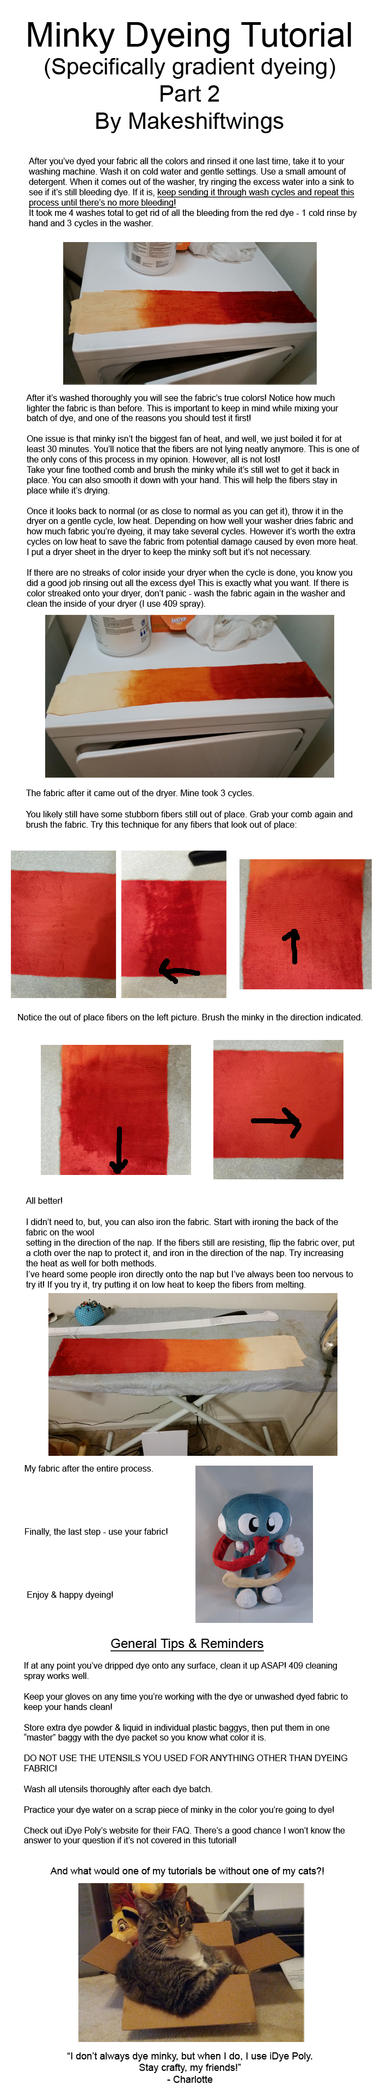 Minky Dyeing Tutorial - Part 2 by makeshiftwings30